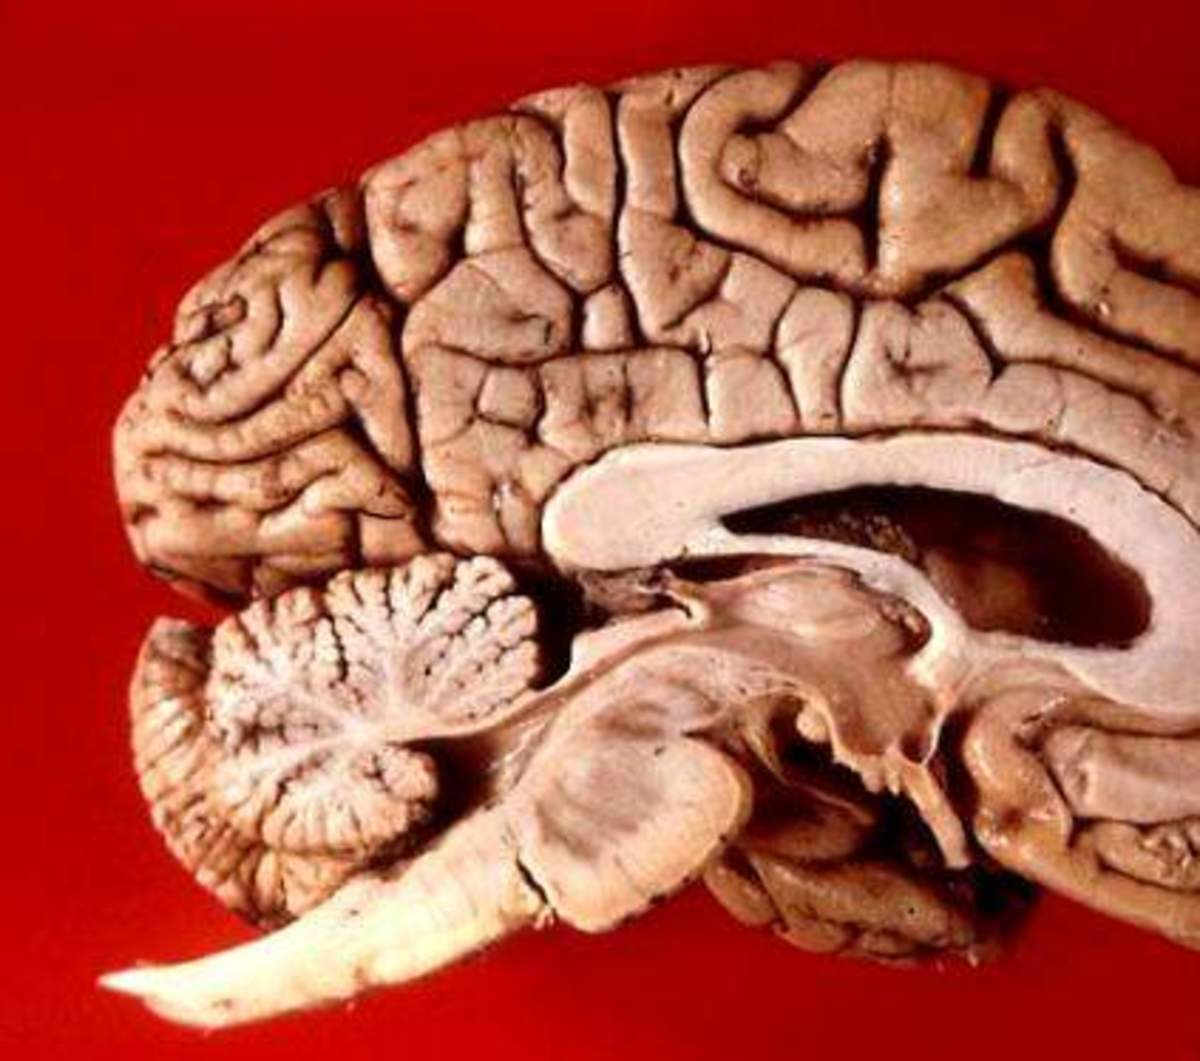 The many folds of the brain are filled with cerebrospinal fluid (CSF) to keep it cushioned, fed, and to clean out wastes. The CSF replaces itself completely 3.7 times per day.